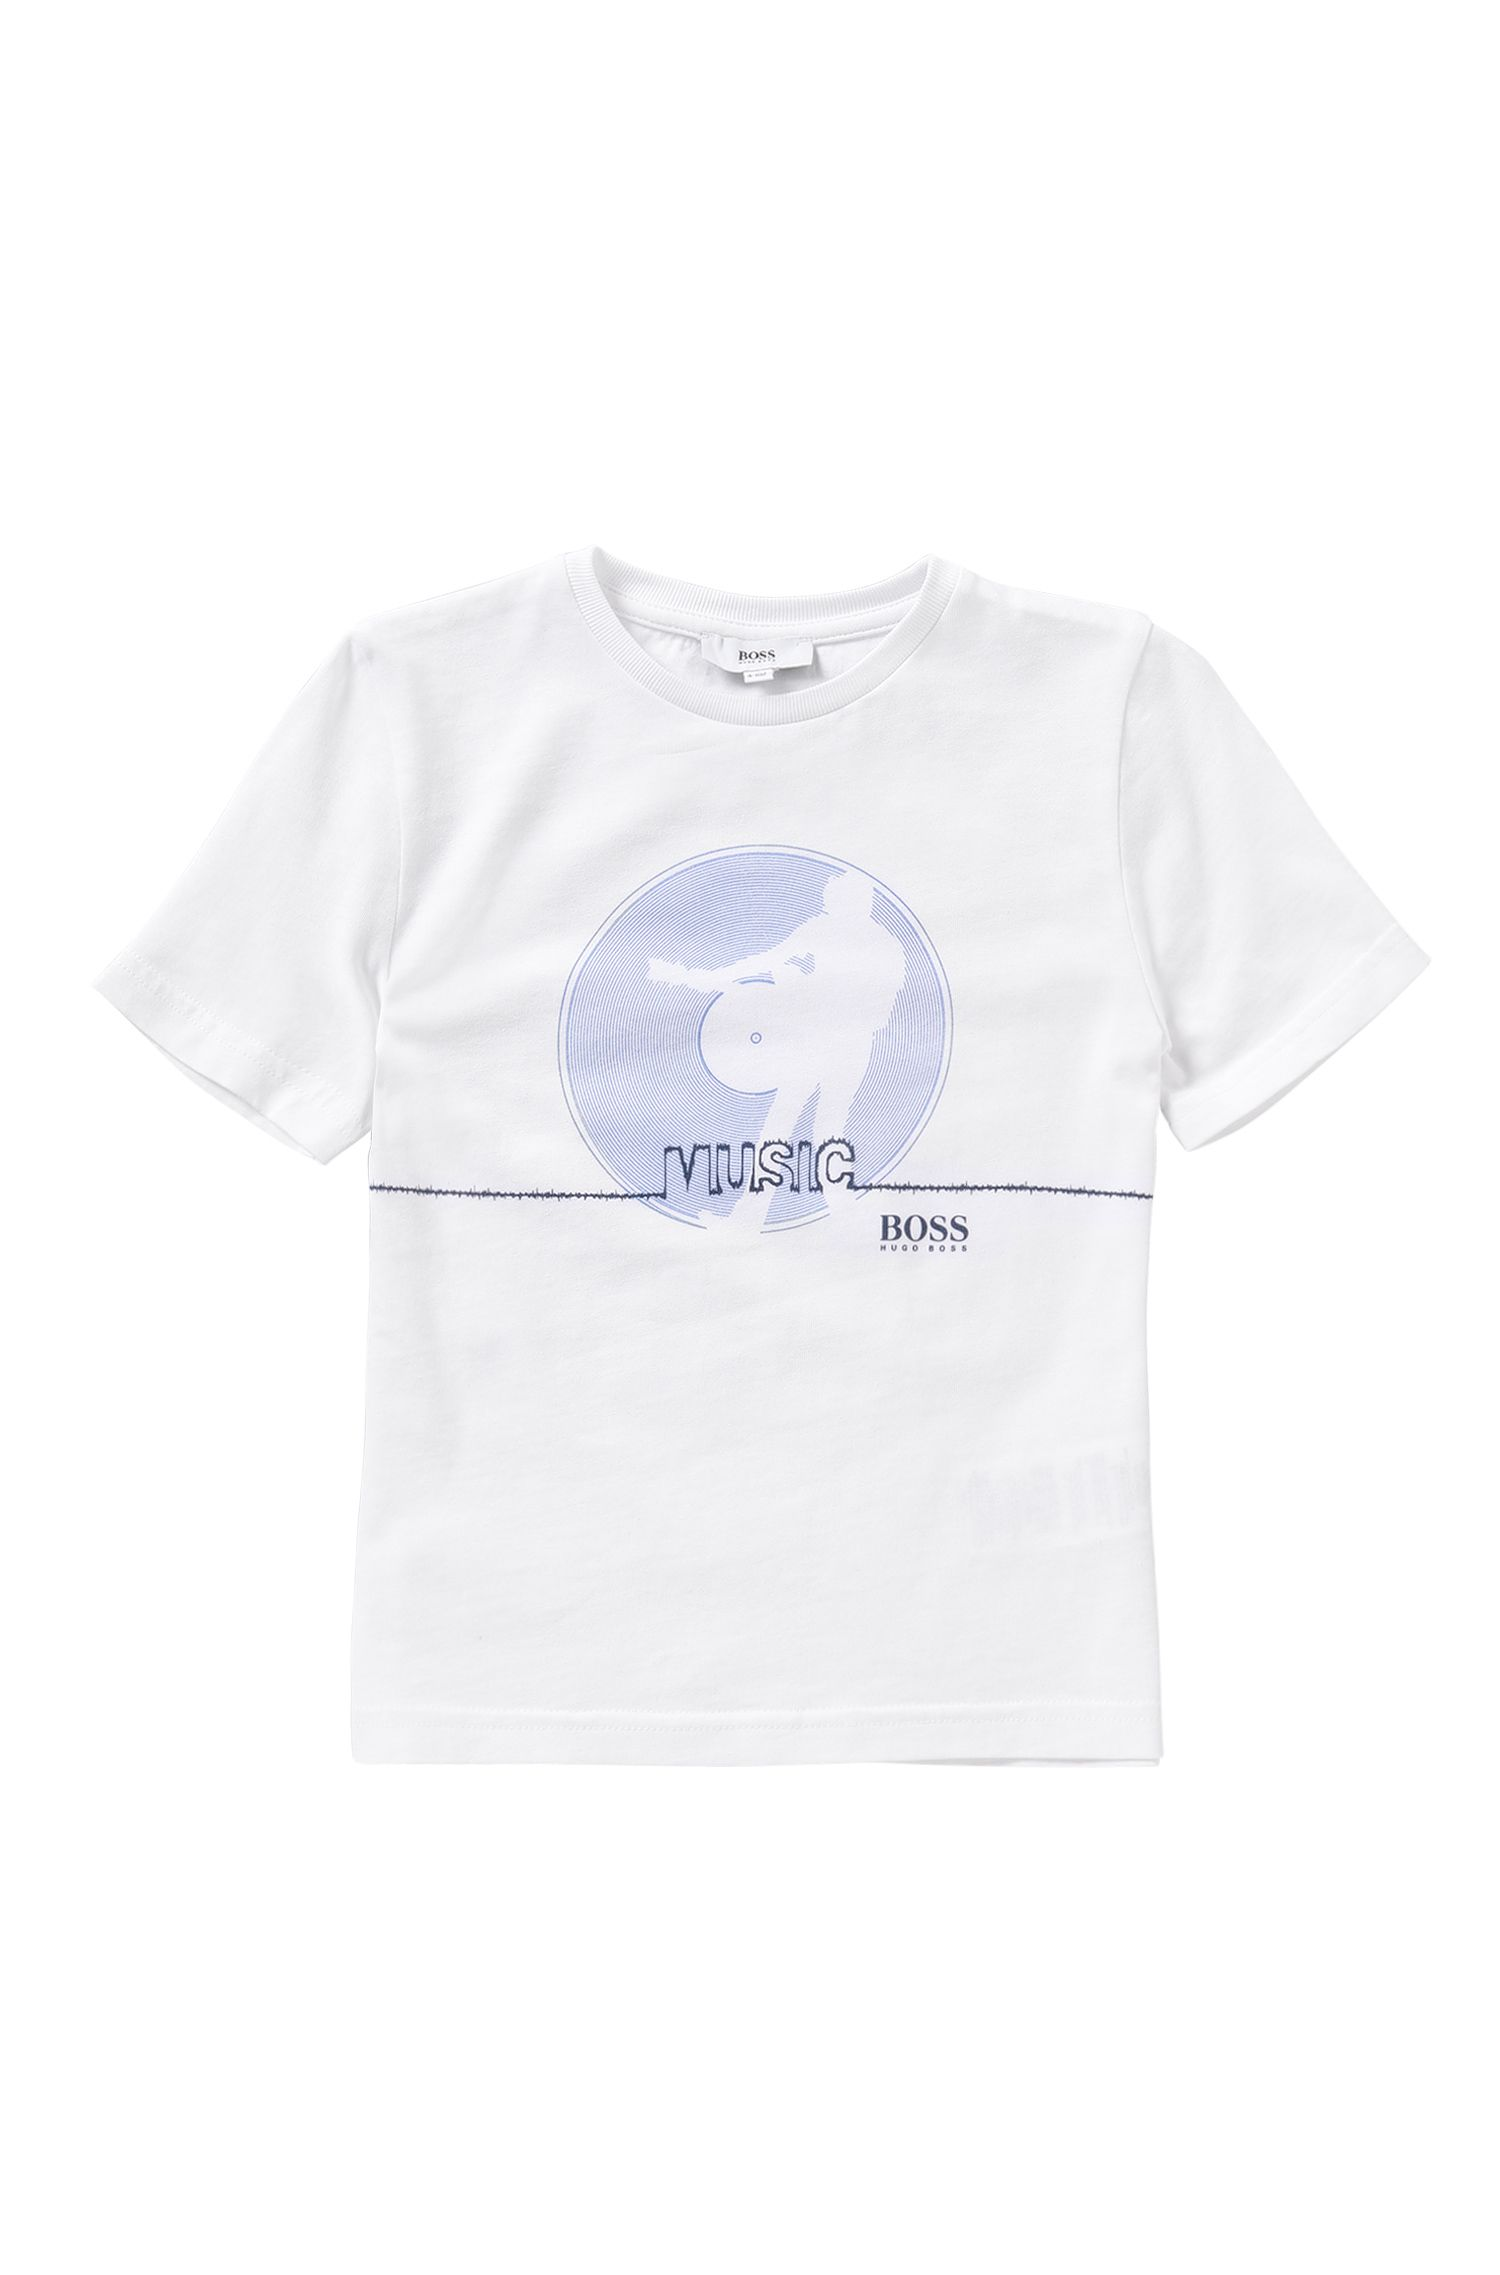 Kids' t-shirt in pure cotton with printed front motif: 'J25931'